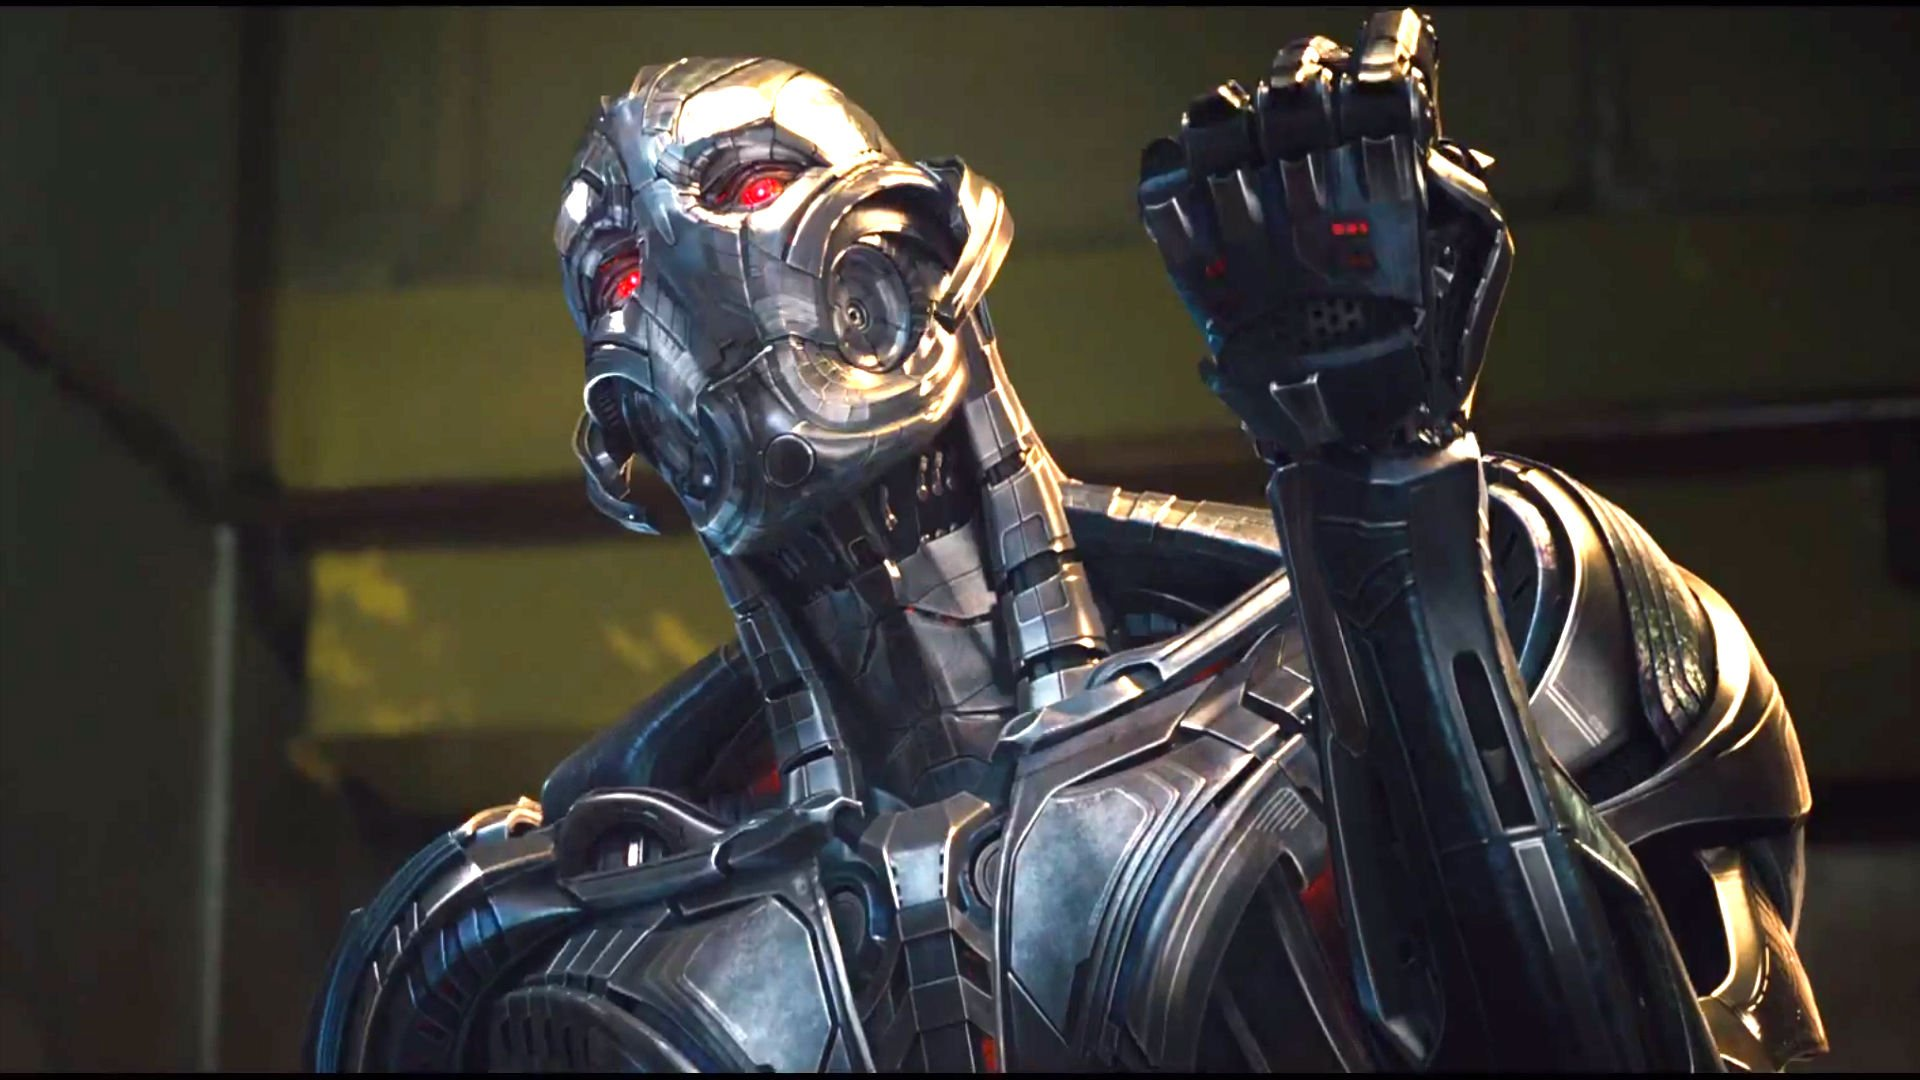 The Avengers: Age of Ultron images Avengers  : Age of Ultron 1920x1080